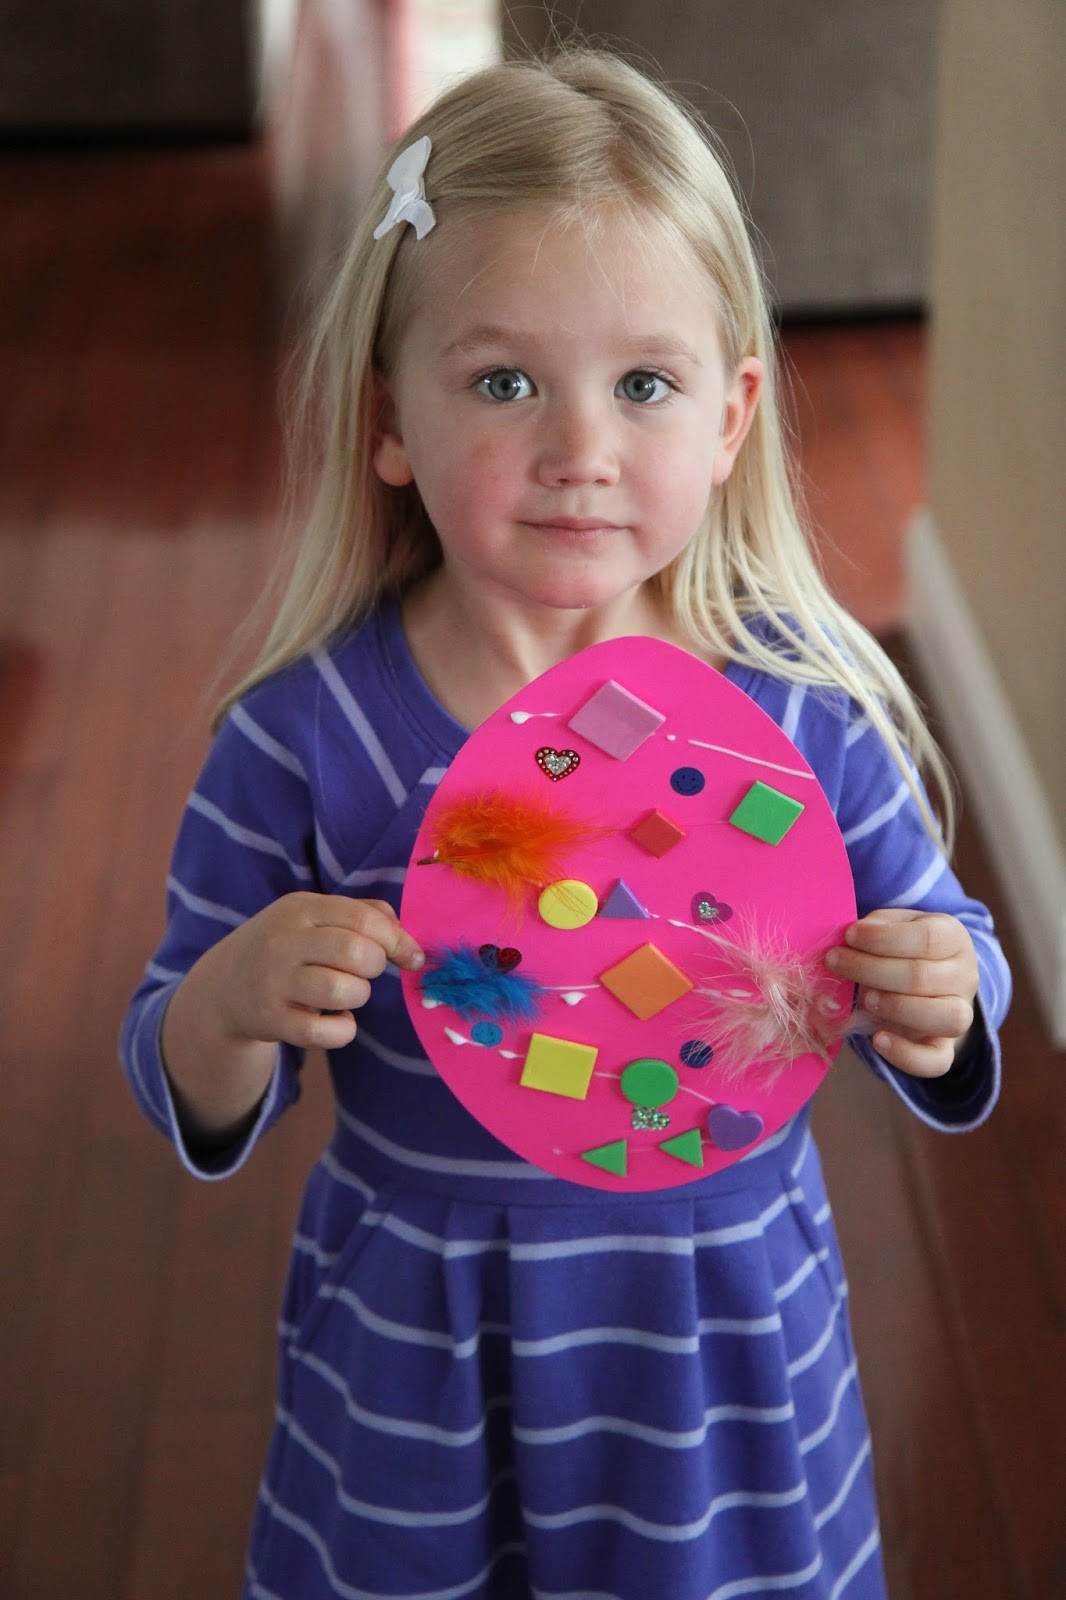 Preschool Projects Ideas  Toddler Approved Easter Egg Collage Craft for Toddlers